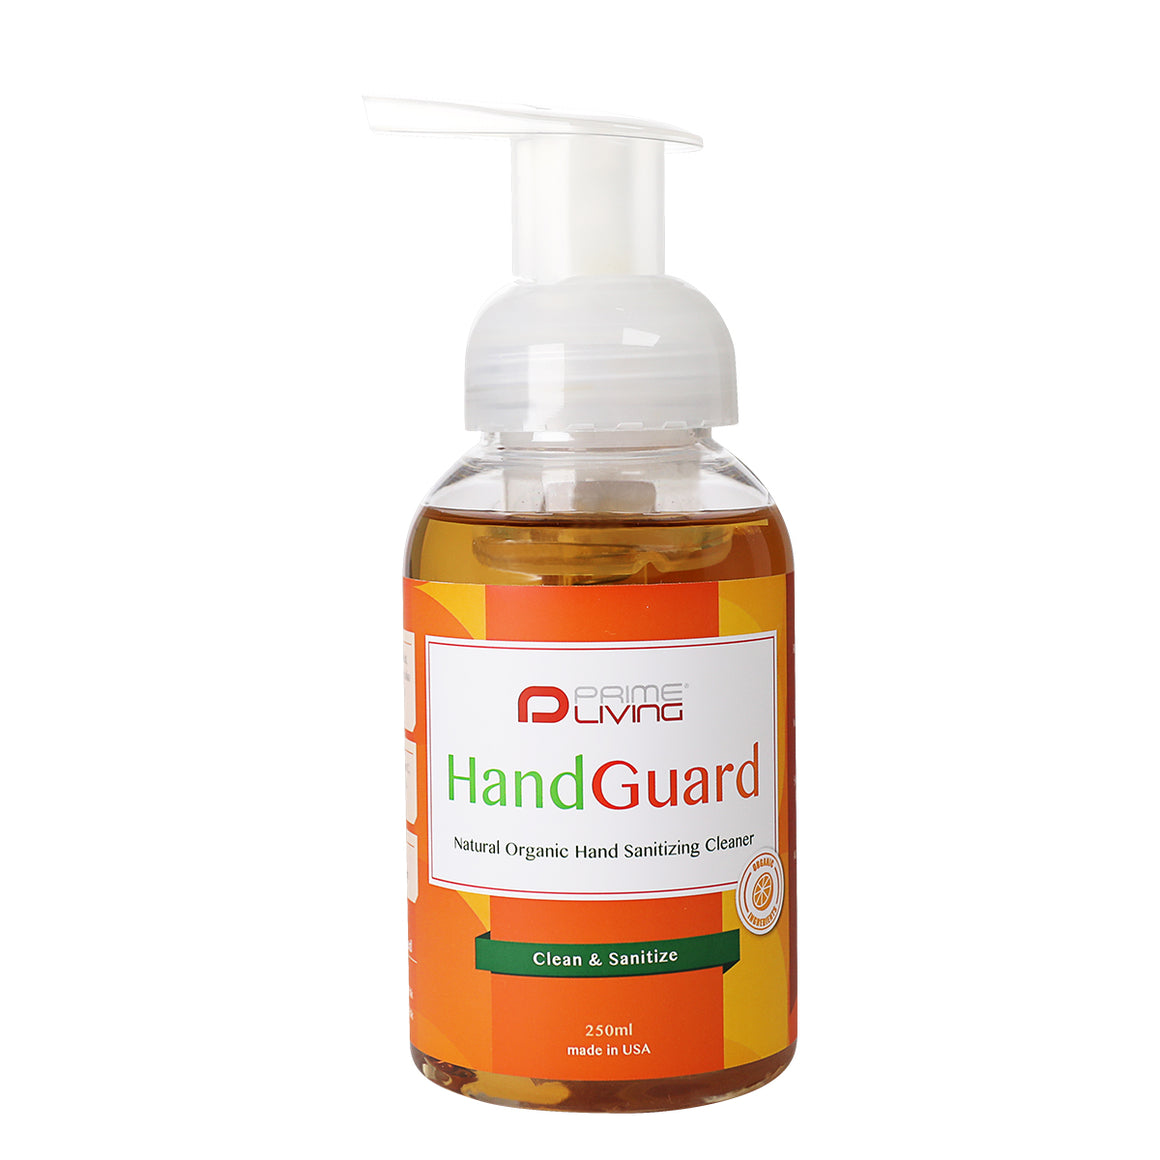 Prime Living- HandGuard- Natural Organic Hand Sanitizing Cleaner 250 ml 有機天然免沖洗消毒搓手液(15秒殺菌)